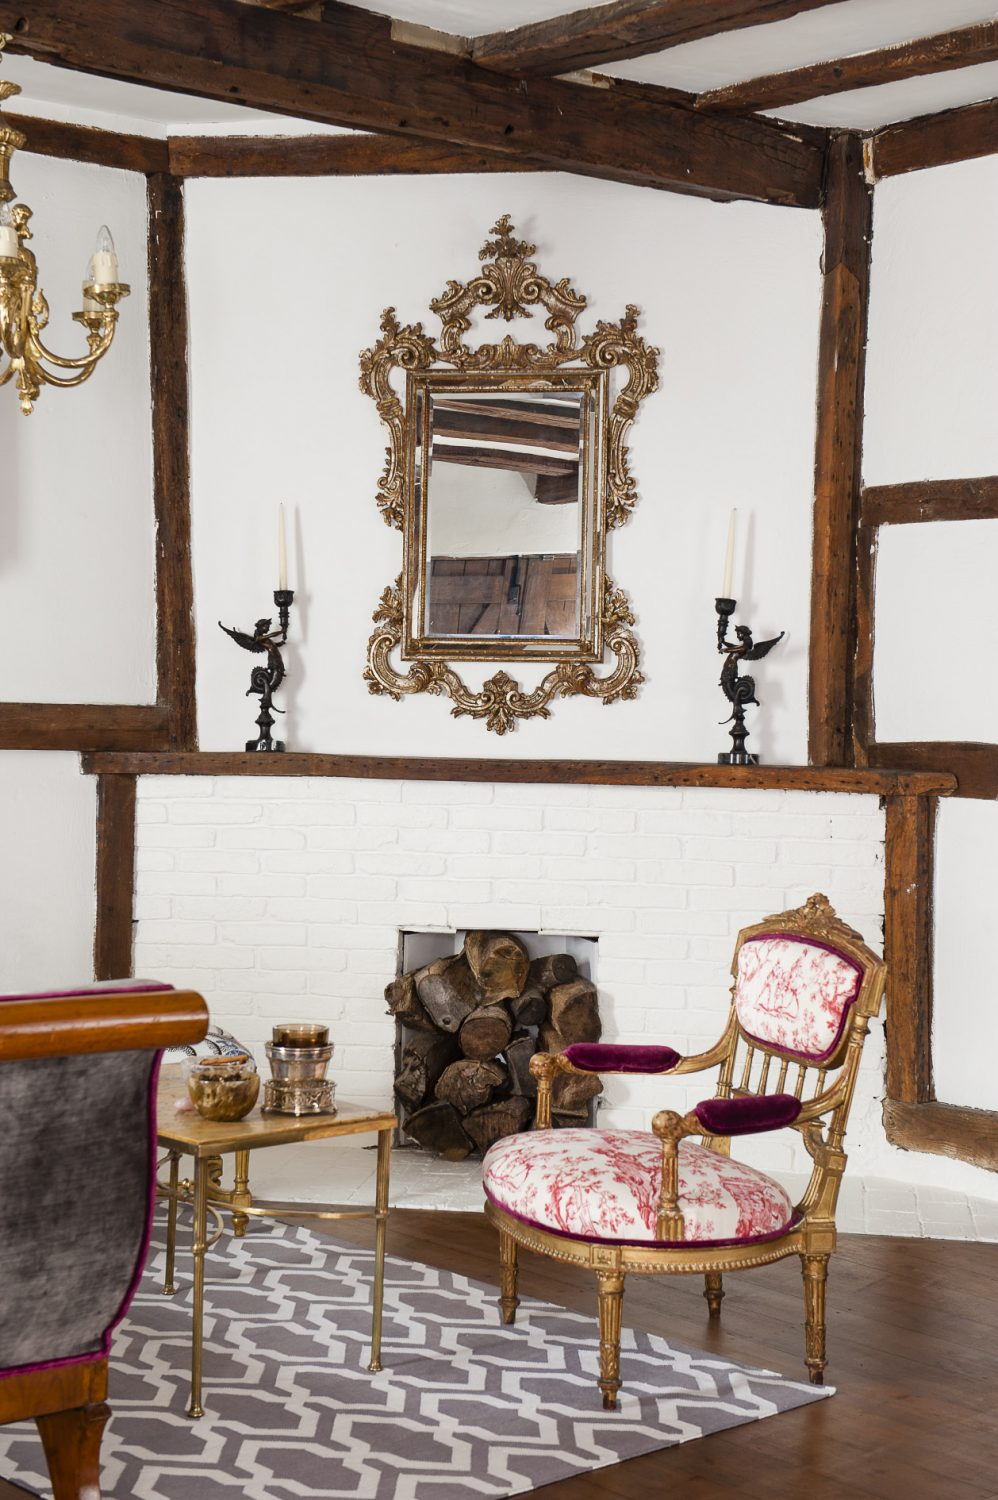 A Venetian rococo mirror is mounted above the painted brickwork of the fireplace